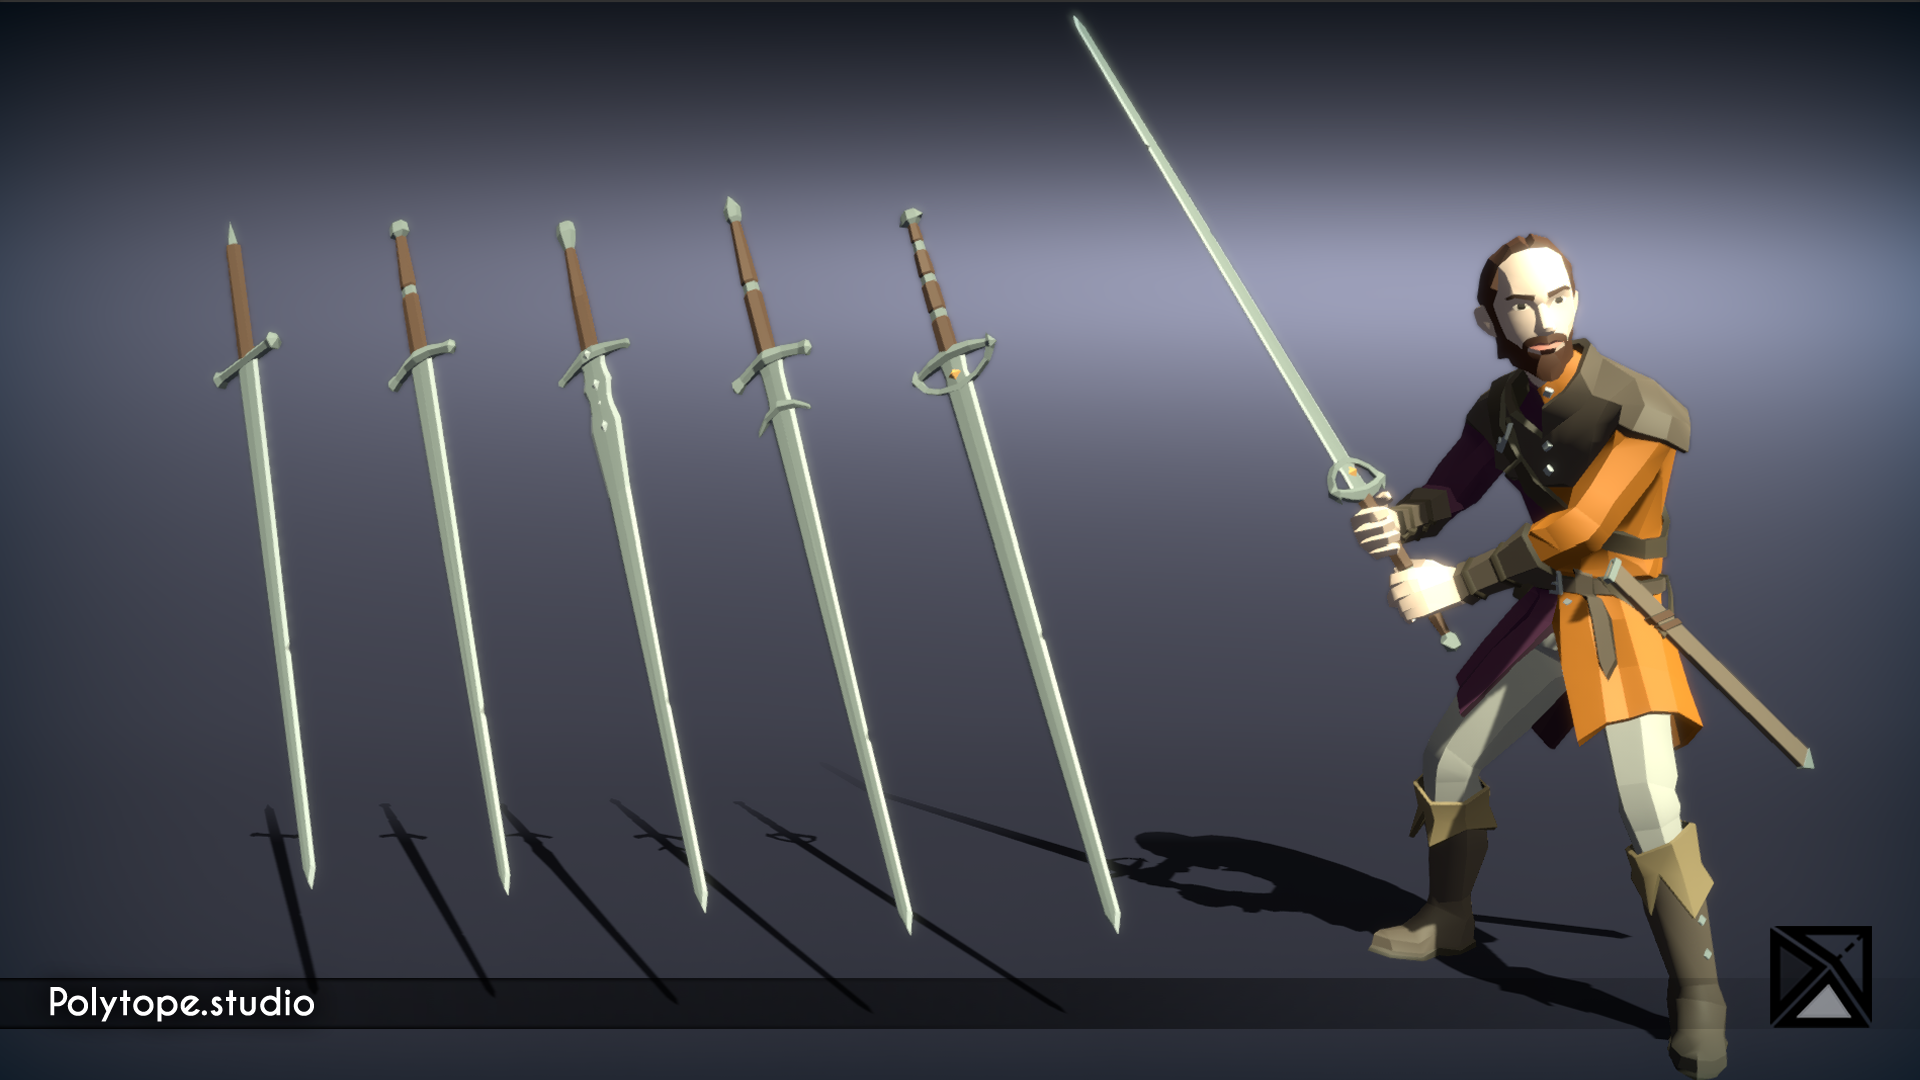 PT_Medieval_Lowpoly_Weapons_Long_Sword.png